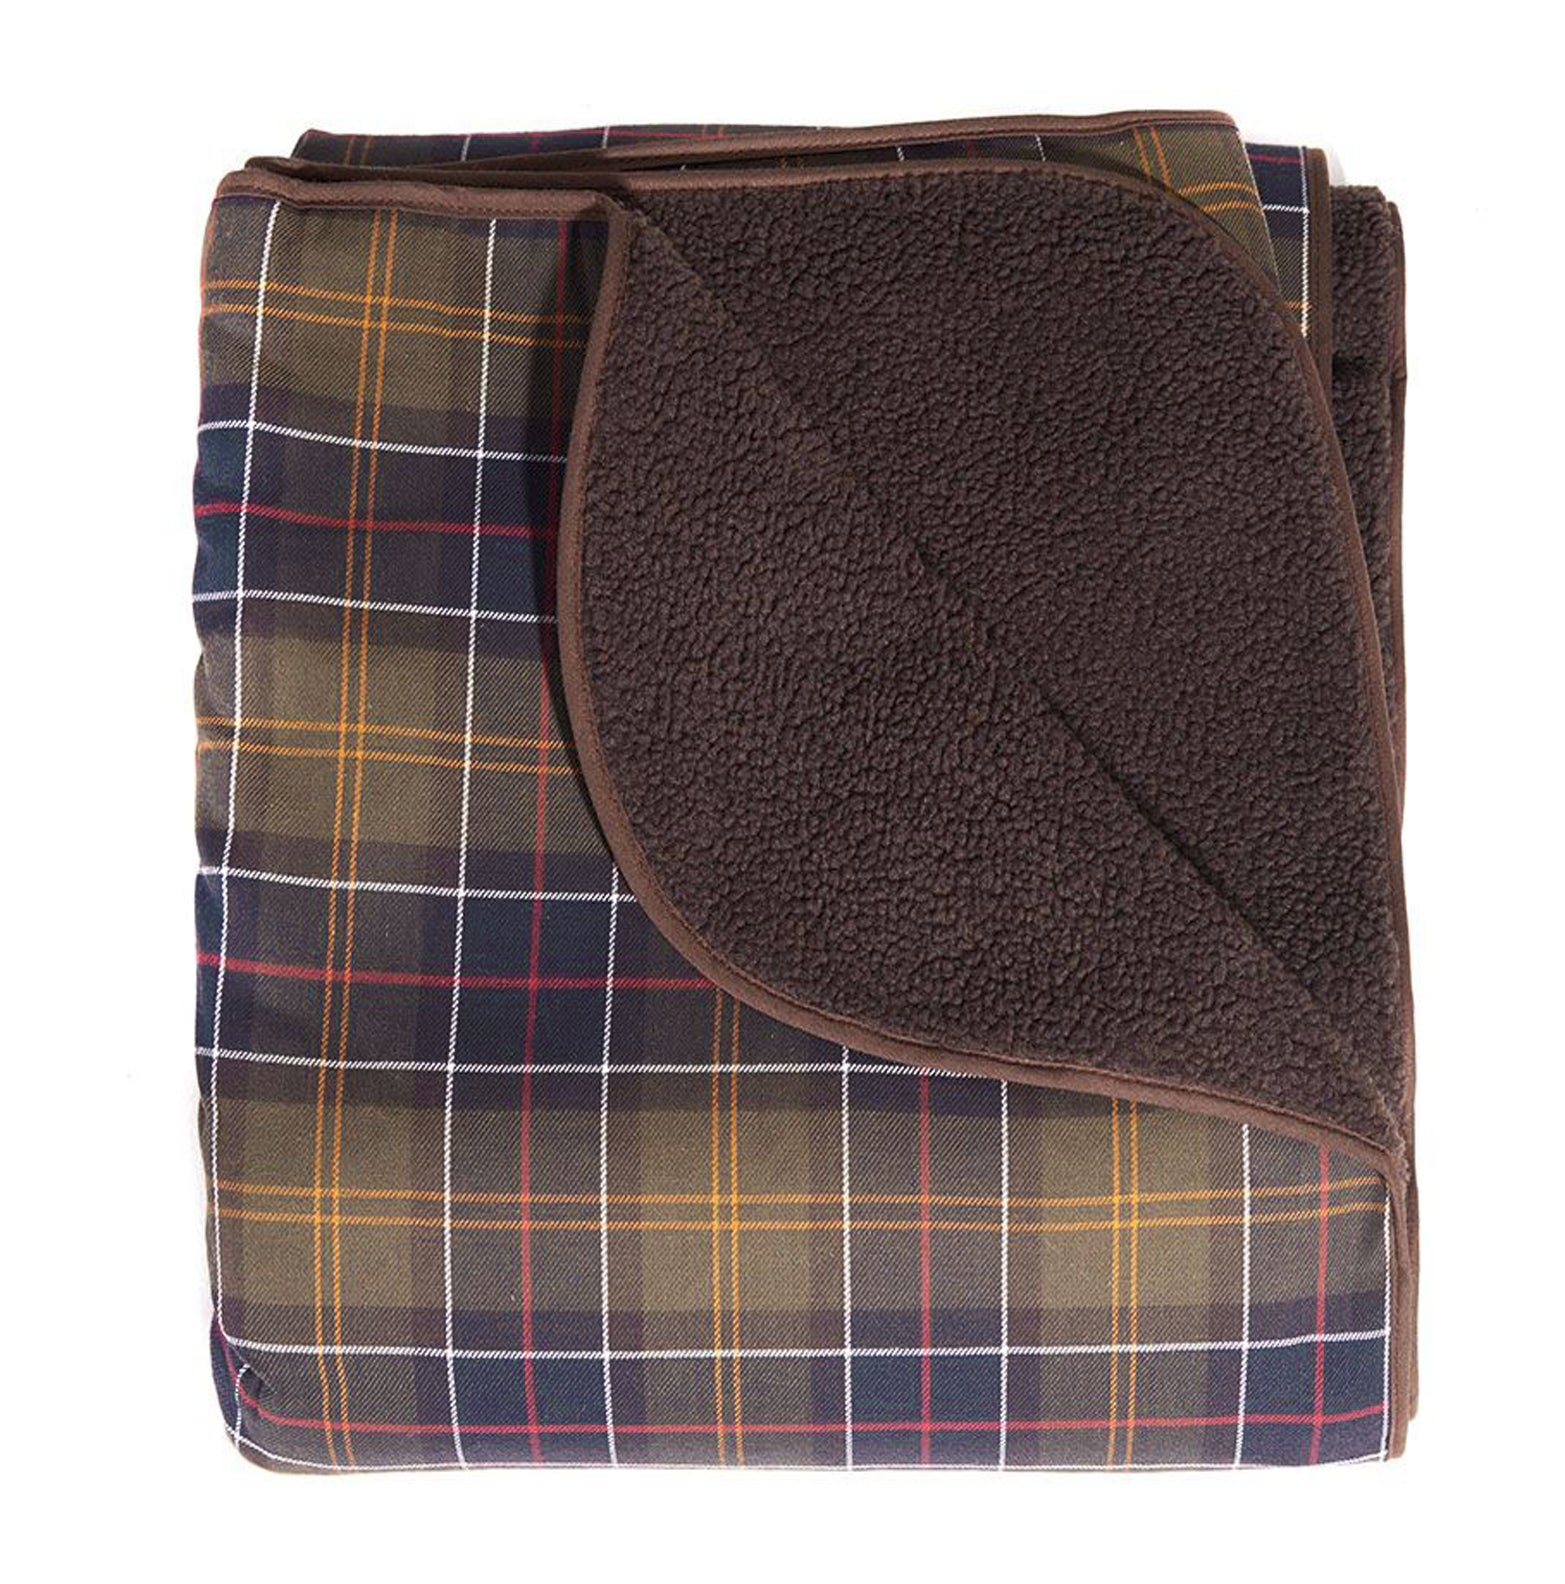 Barbour Fleece Dog Blanket - North Shore Saddlery